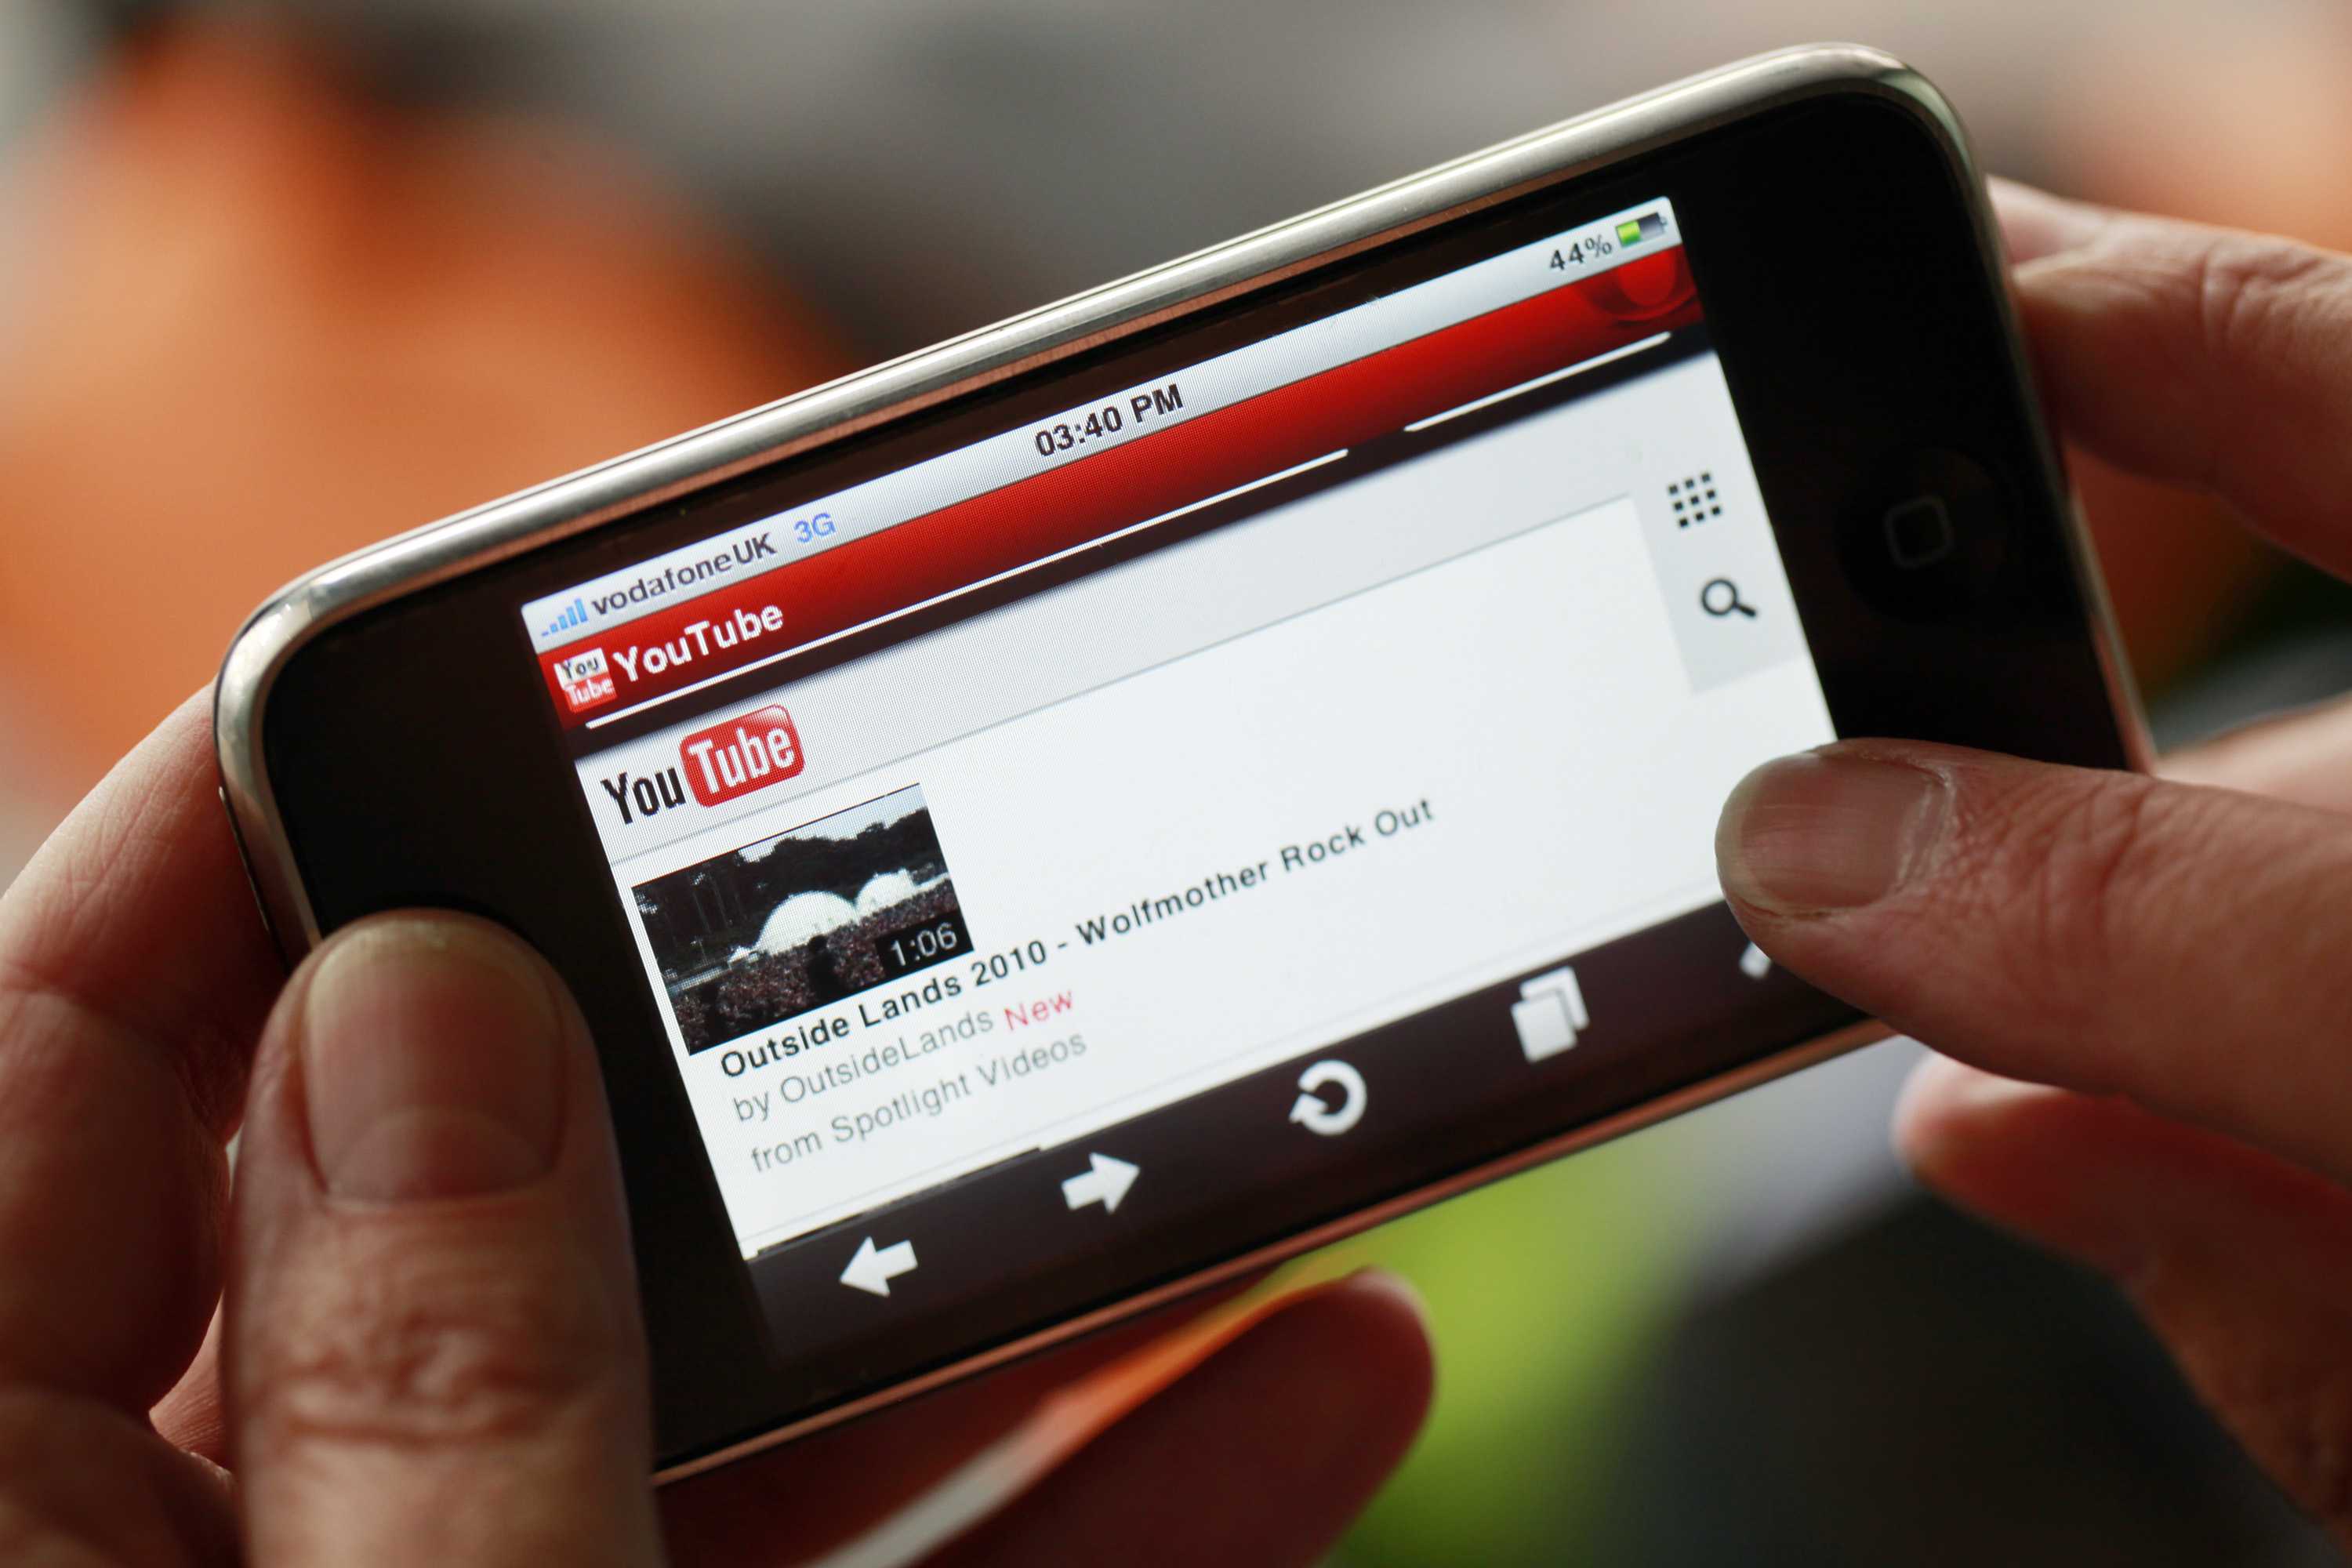 A businessman browses Google Inc.?s YouTube website using an Apple iPhone, made by Apple Inc., in this arranged photograph in London, U.K., on Thursday, Aug.19, 2010.